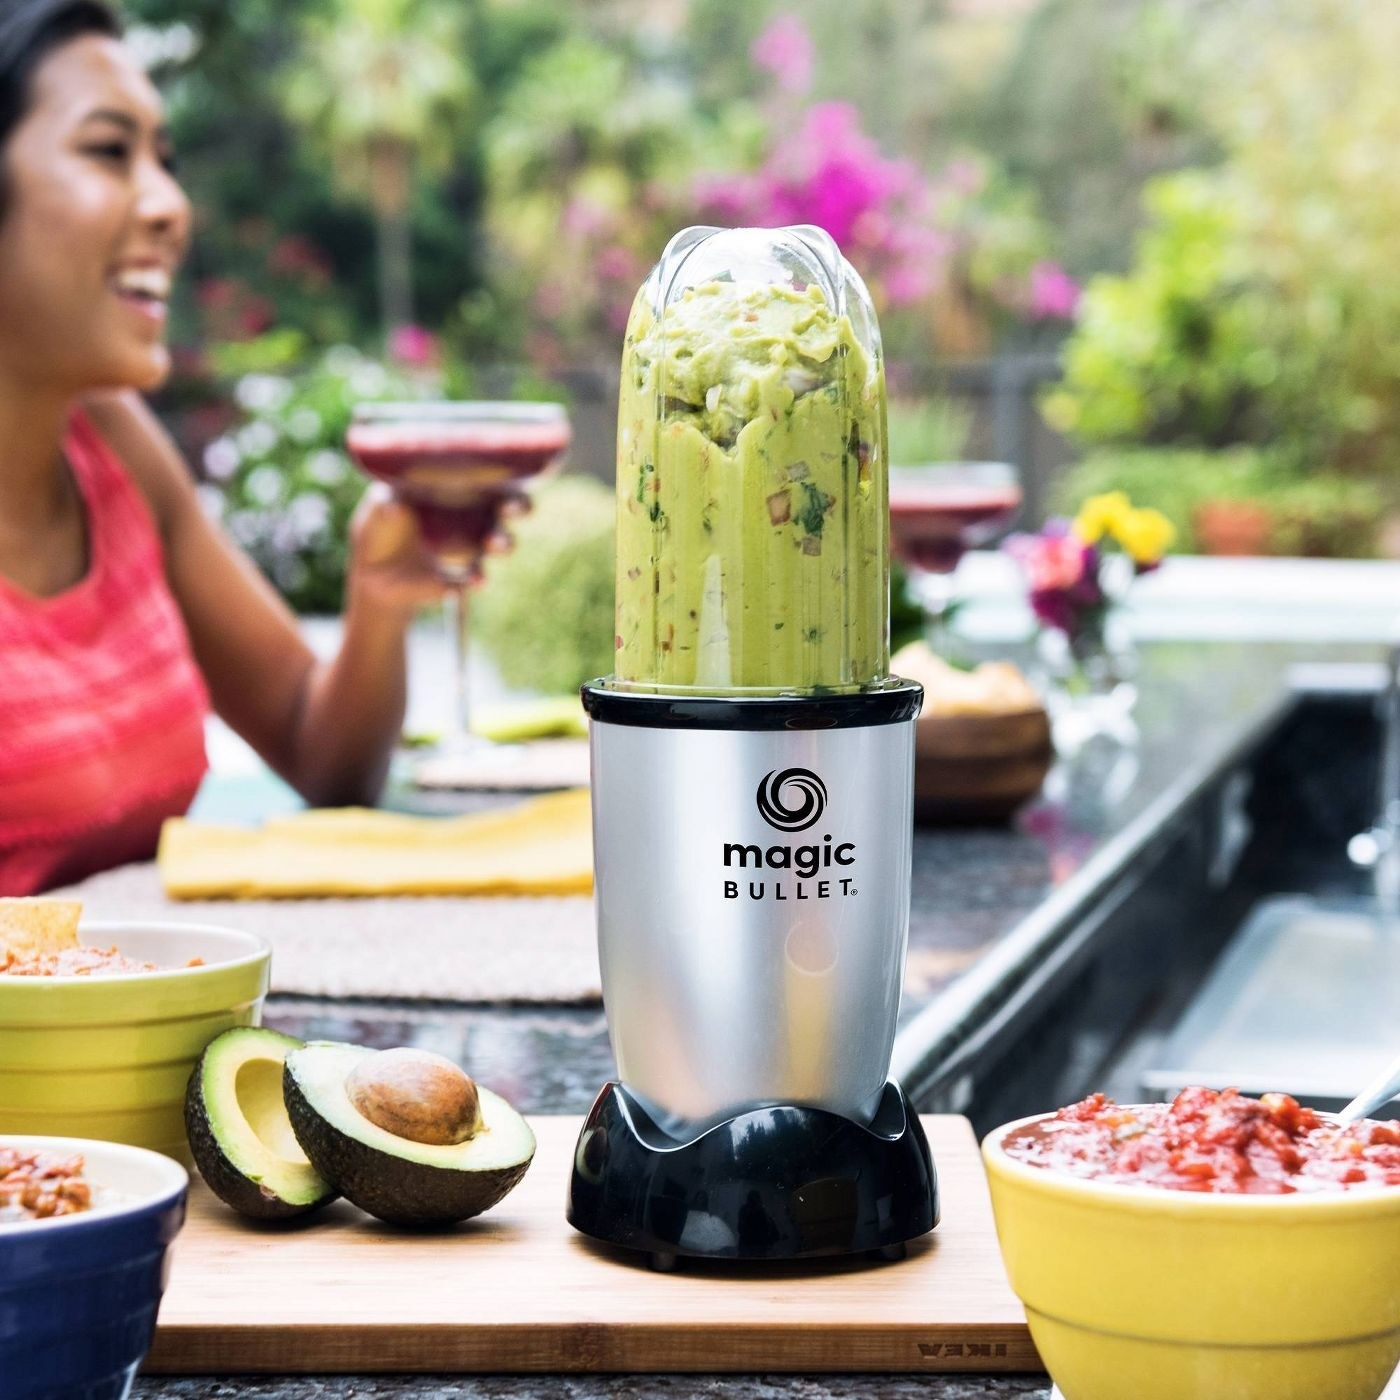 magic bullet with guacamole in it in the foreground and a woman drinking a margarita in the background